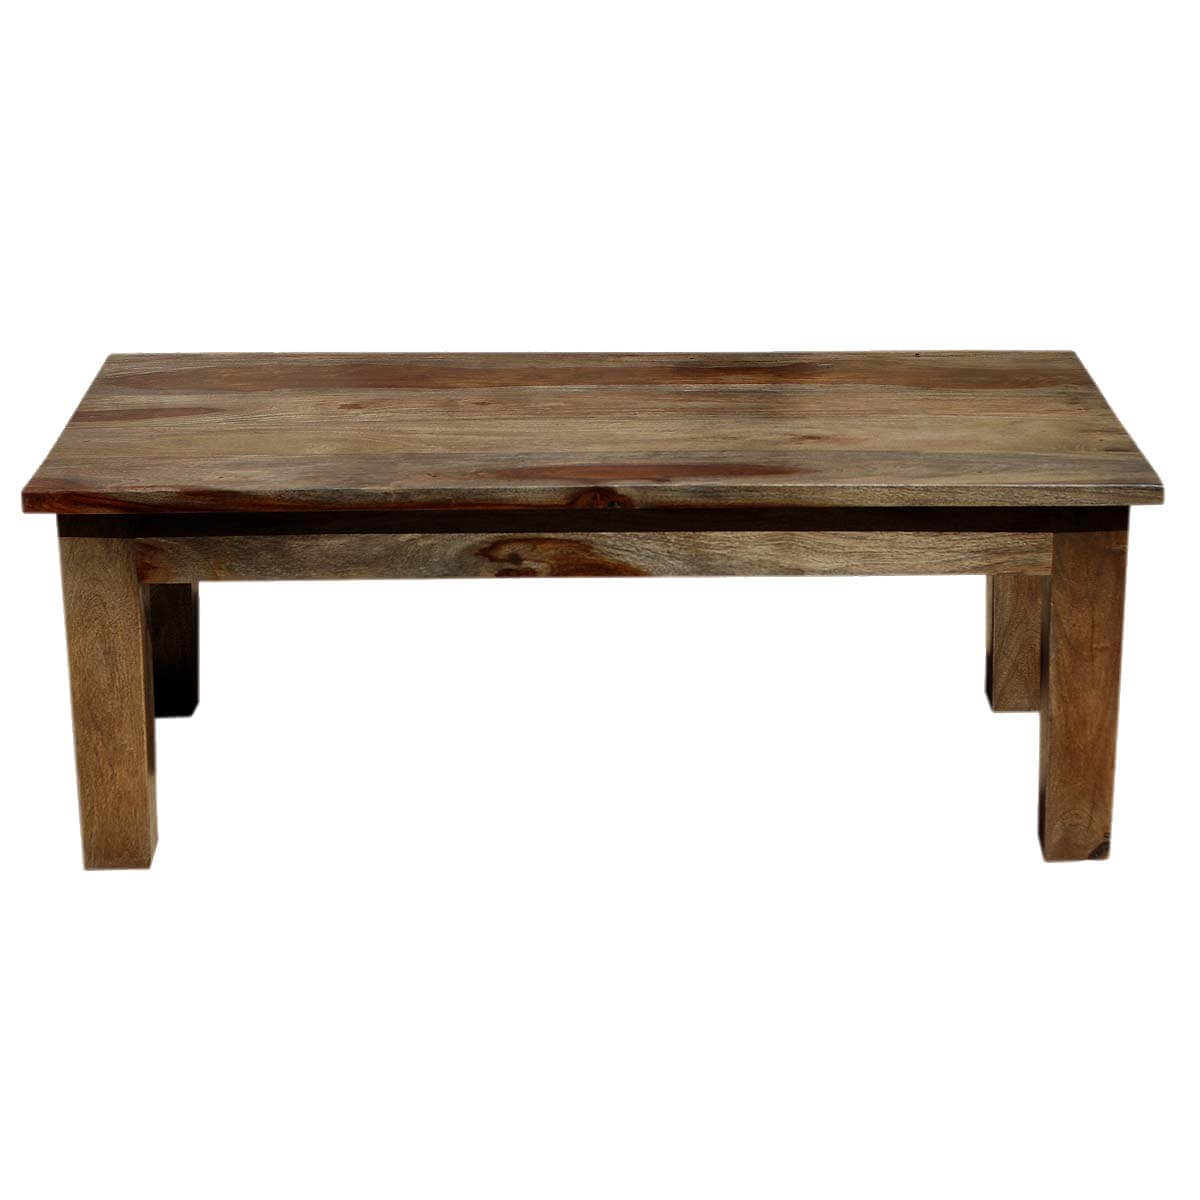 Santa fe simple solid indian rosewood coffee table for Indian coffee table